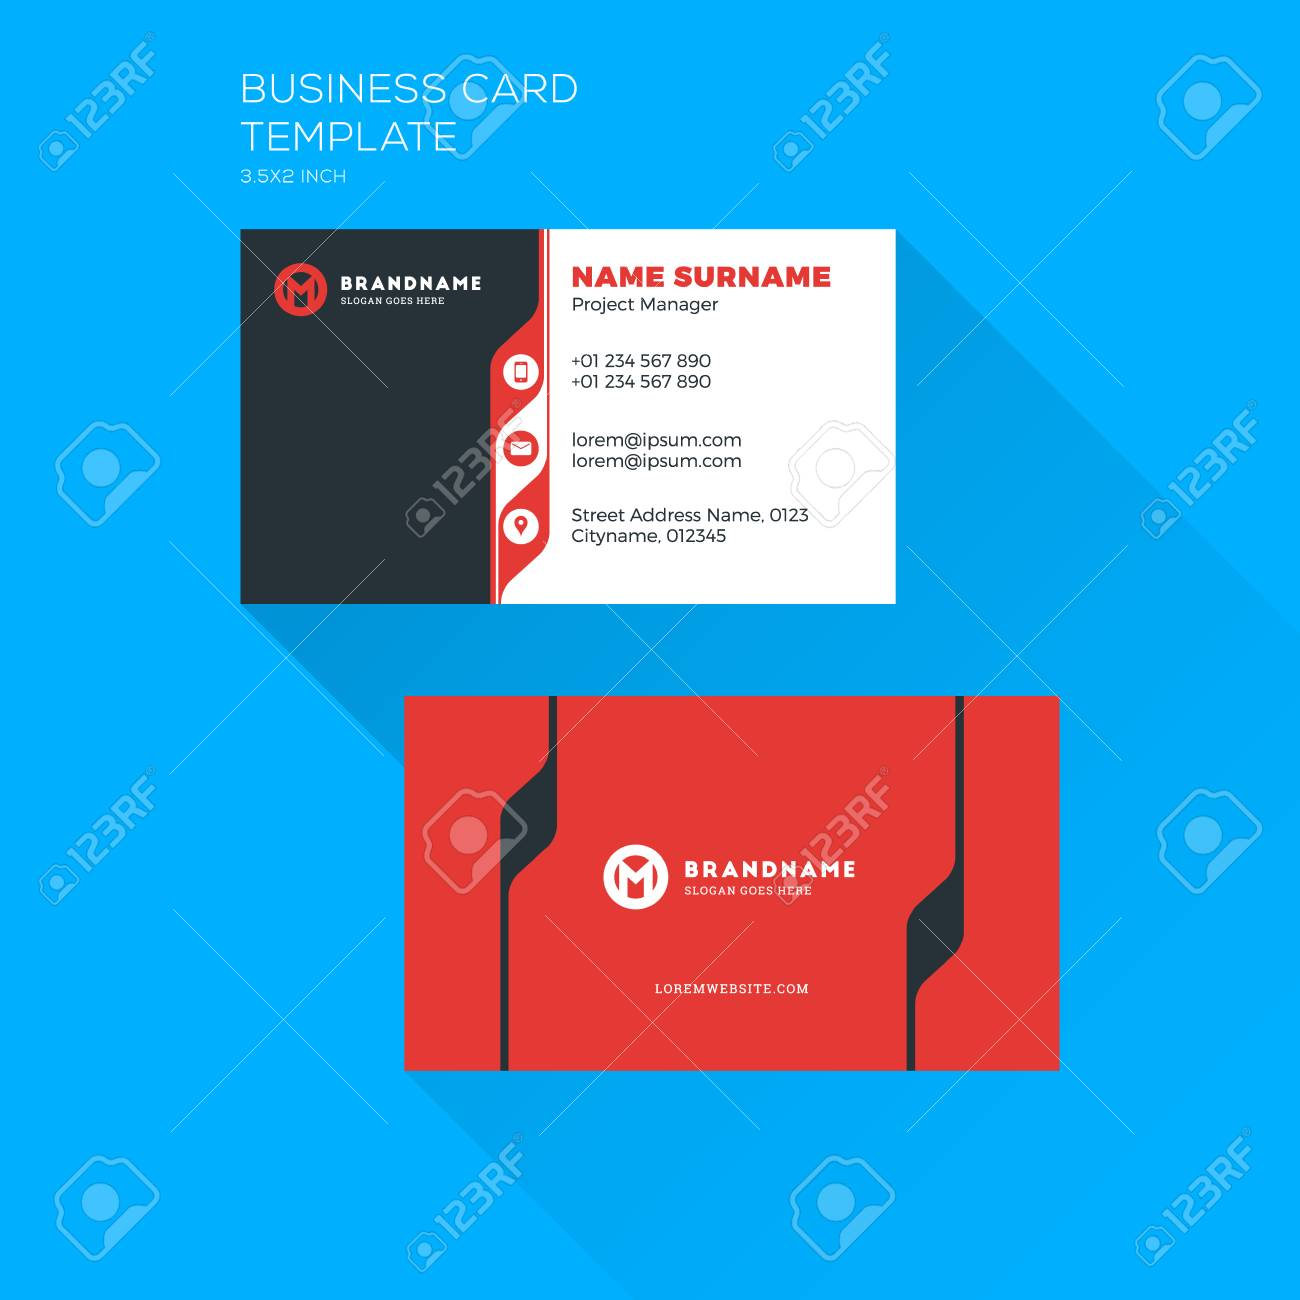 Corporate business card print template personal visiting card corporate business card print template personal visiting card with company logo clean flat stationery accmission Choice Image